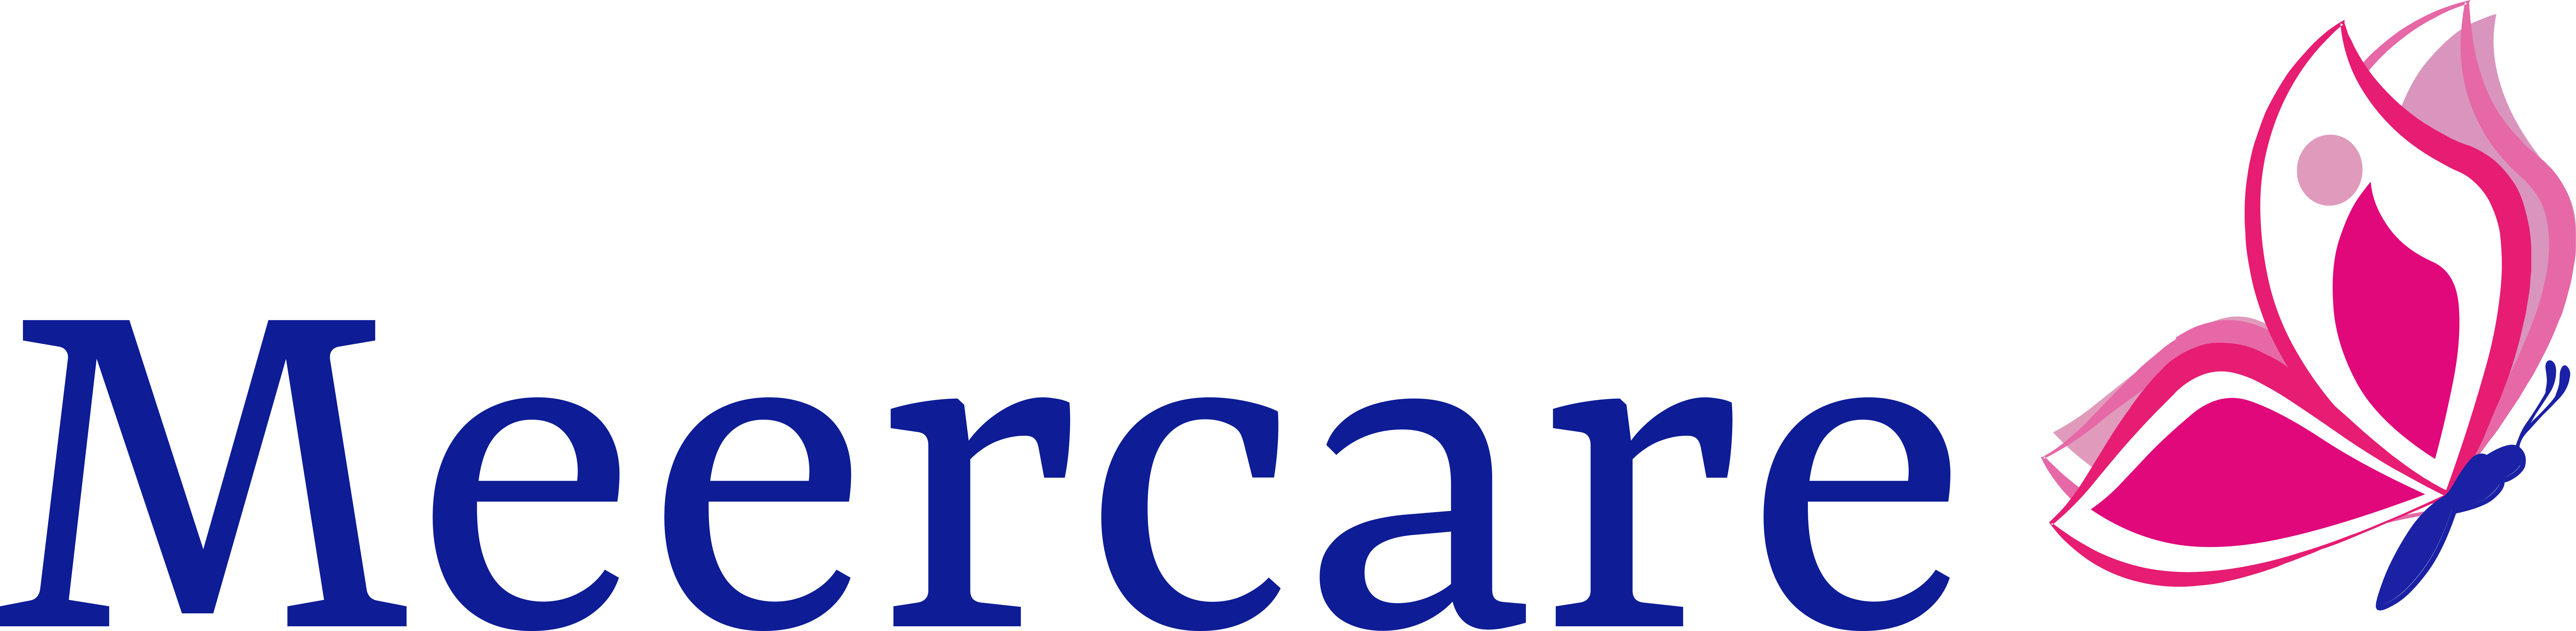 Meercare